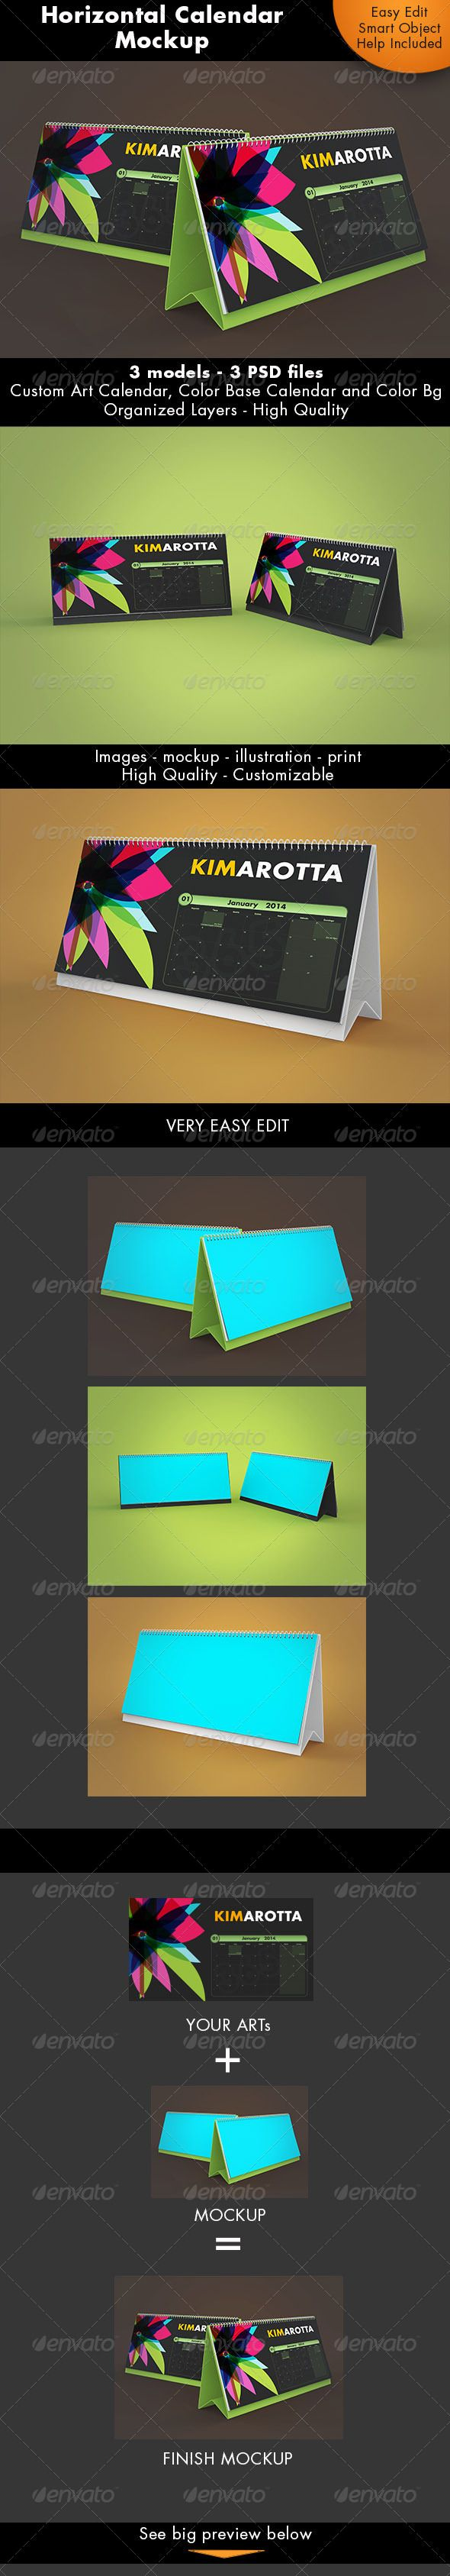 Horizontal Calendar Desk Mockup — Photoshop PSD #office #desk • Available here → https://graphicriver.net/item/horizontal-calendar-desk-mockup/7359269?ref=pxcr